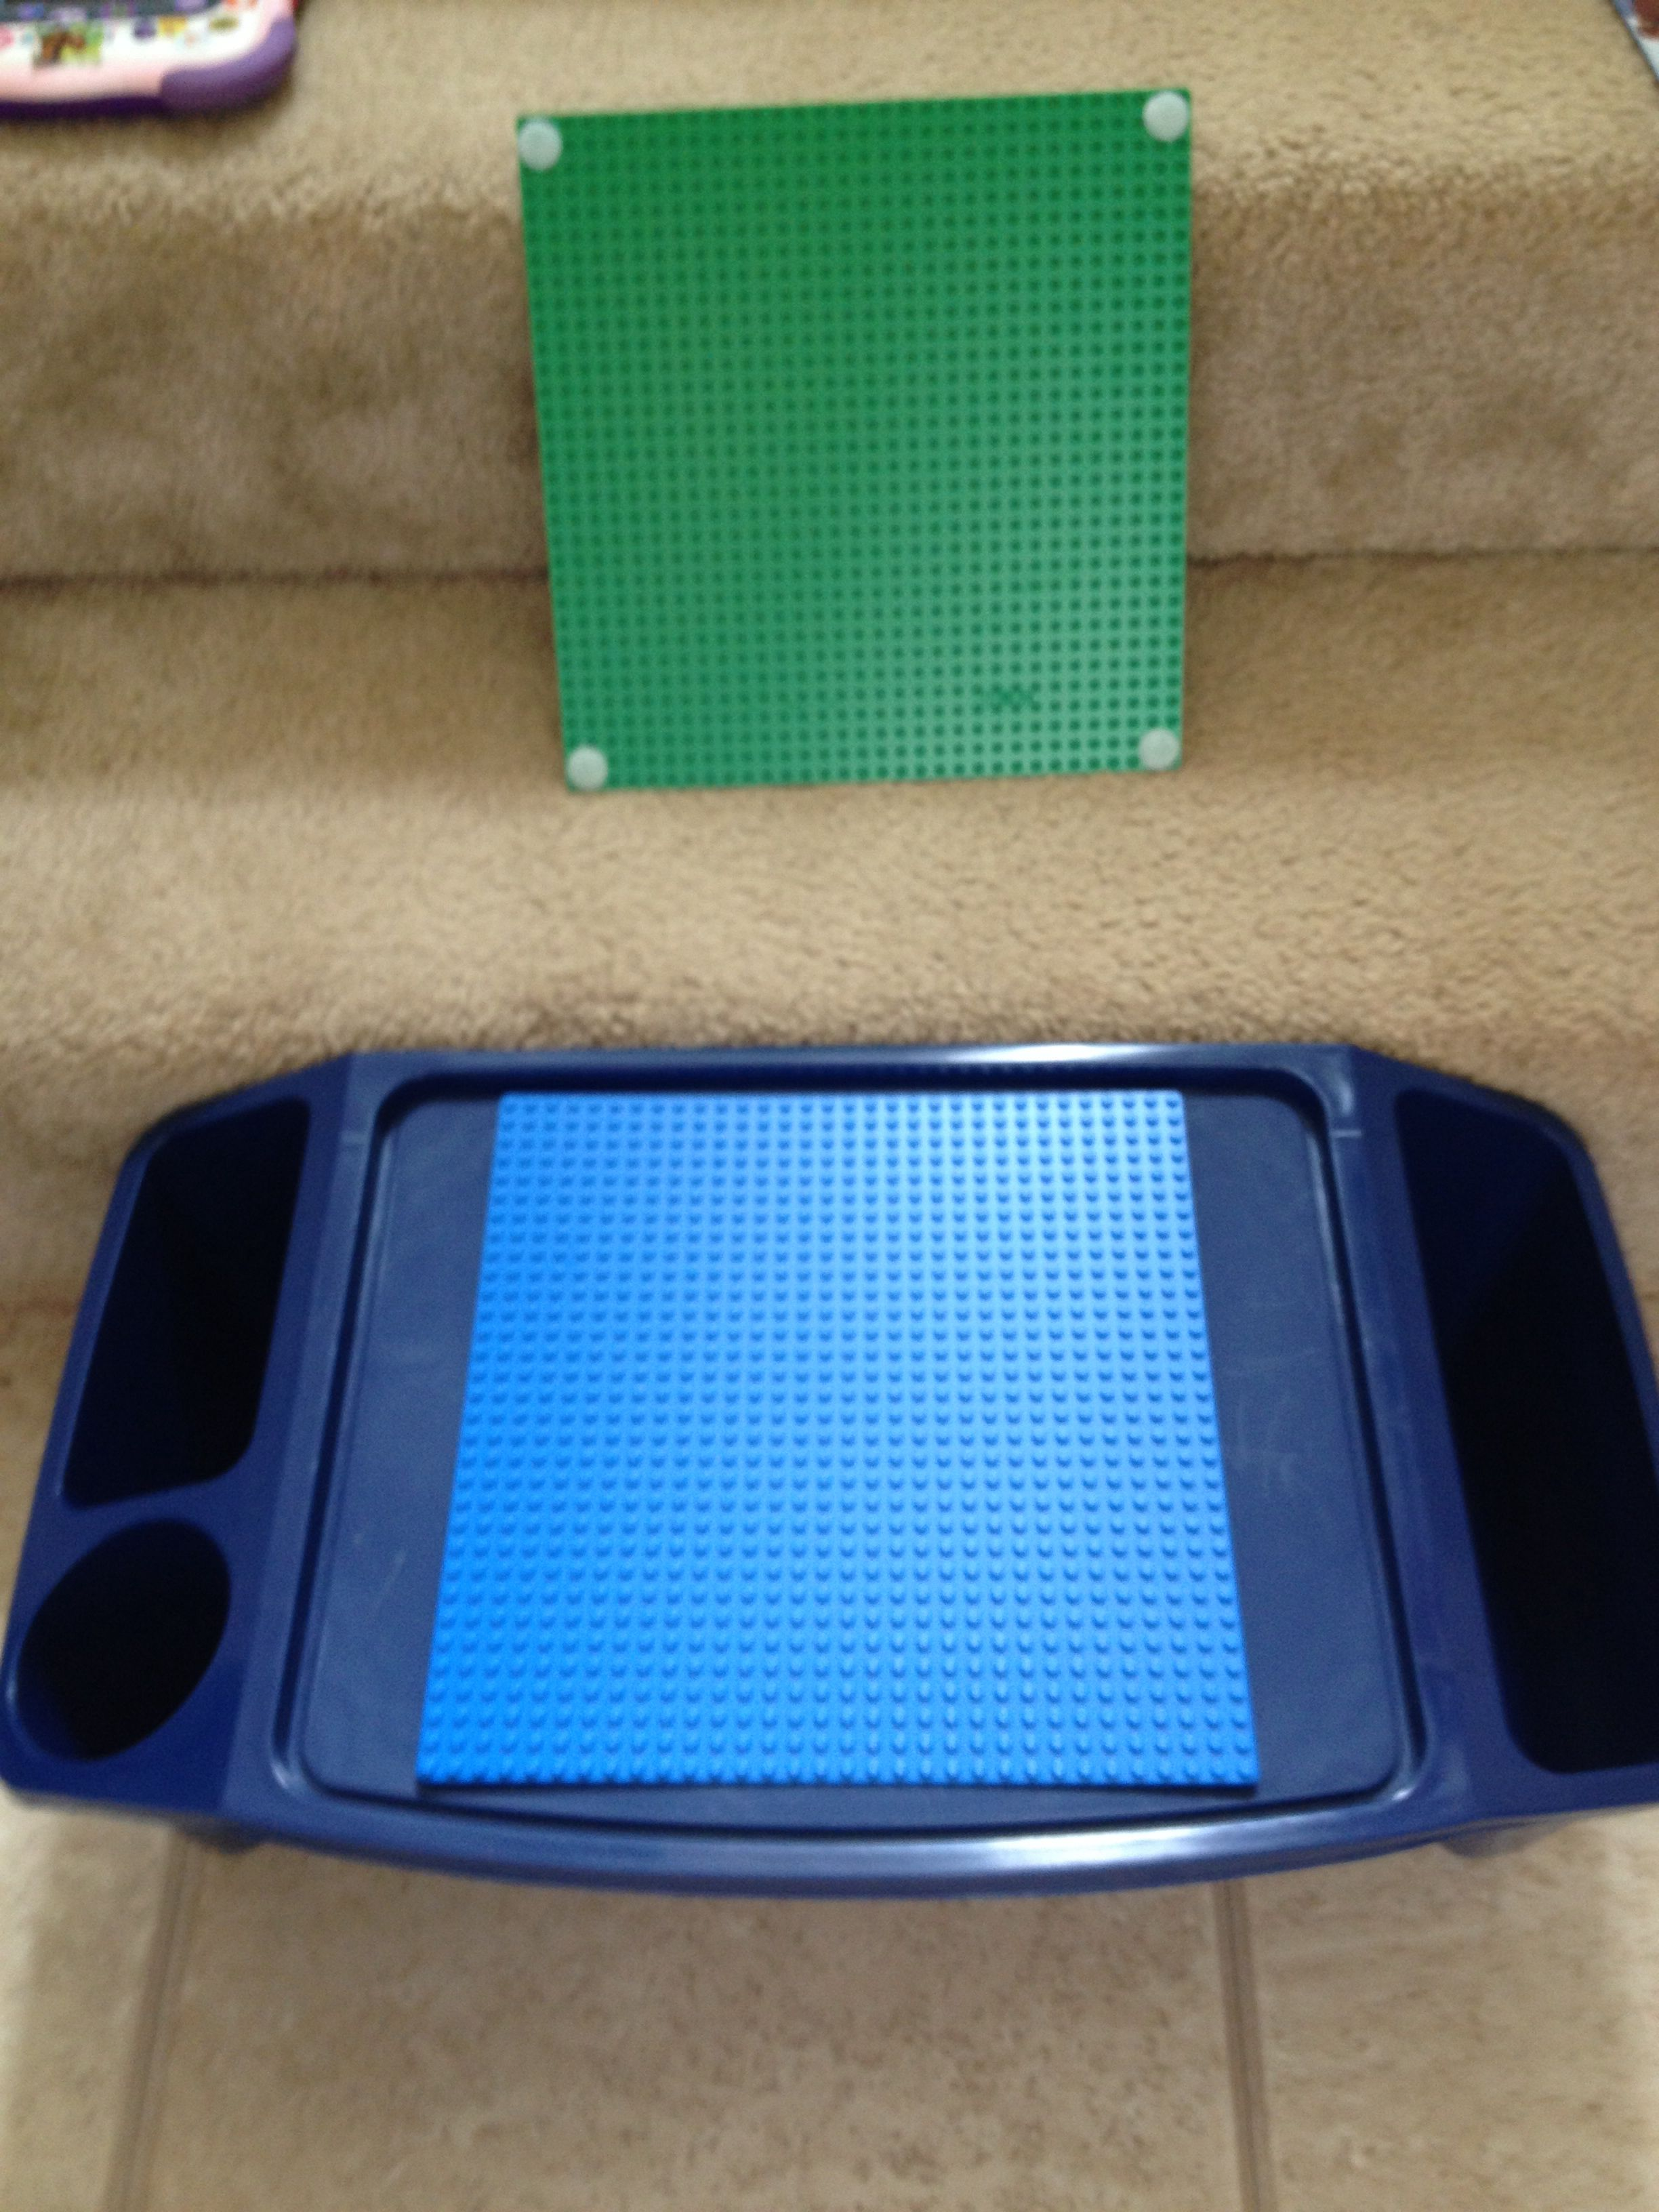 Kids Tray And Lego Base Plates Add Velcro And Voila